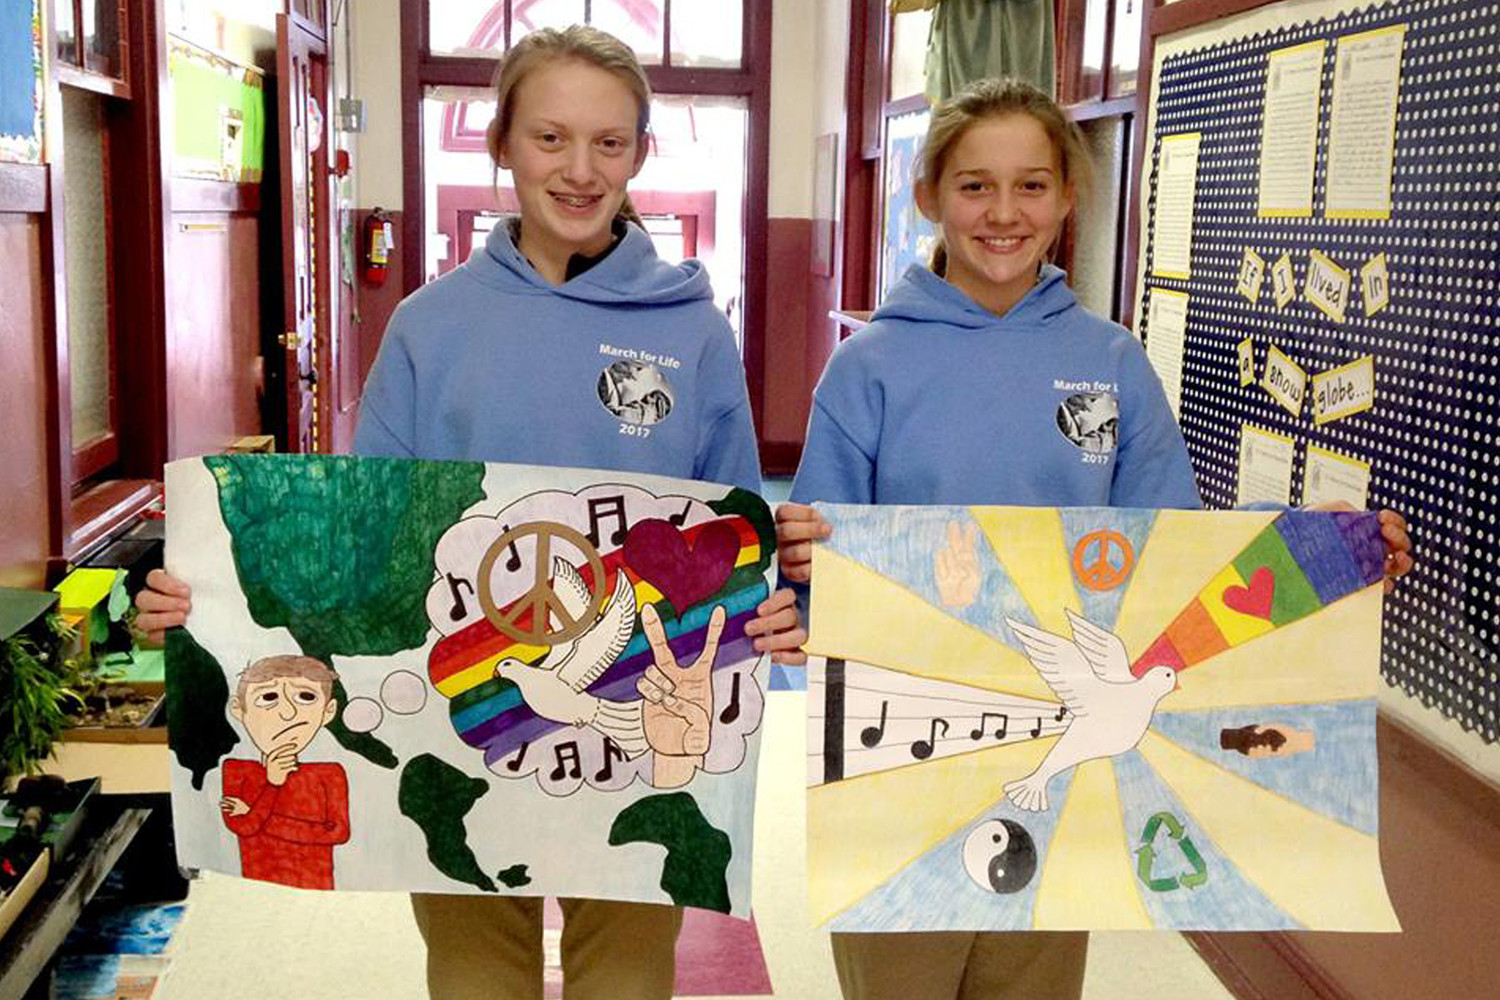 "First-place winner Malerie Schutt and second-place winner Chelsey Moeckli, both students of St. George School in Hermann, display their entries in the Hermann Lions Peace Poster contest. The theme was ""The Future of Peace."" Malerie received $50 and Chelsey received $25. Both were honored at a recent Lions Club meeting."